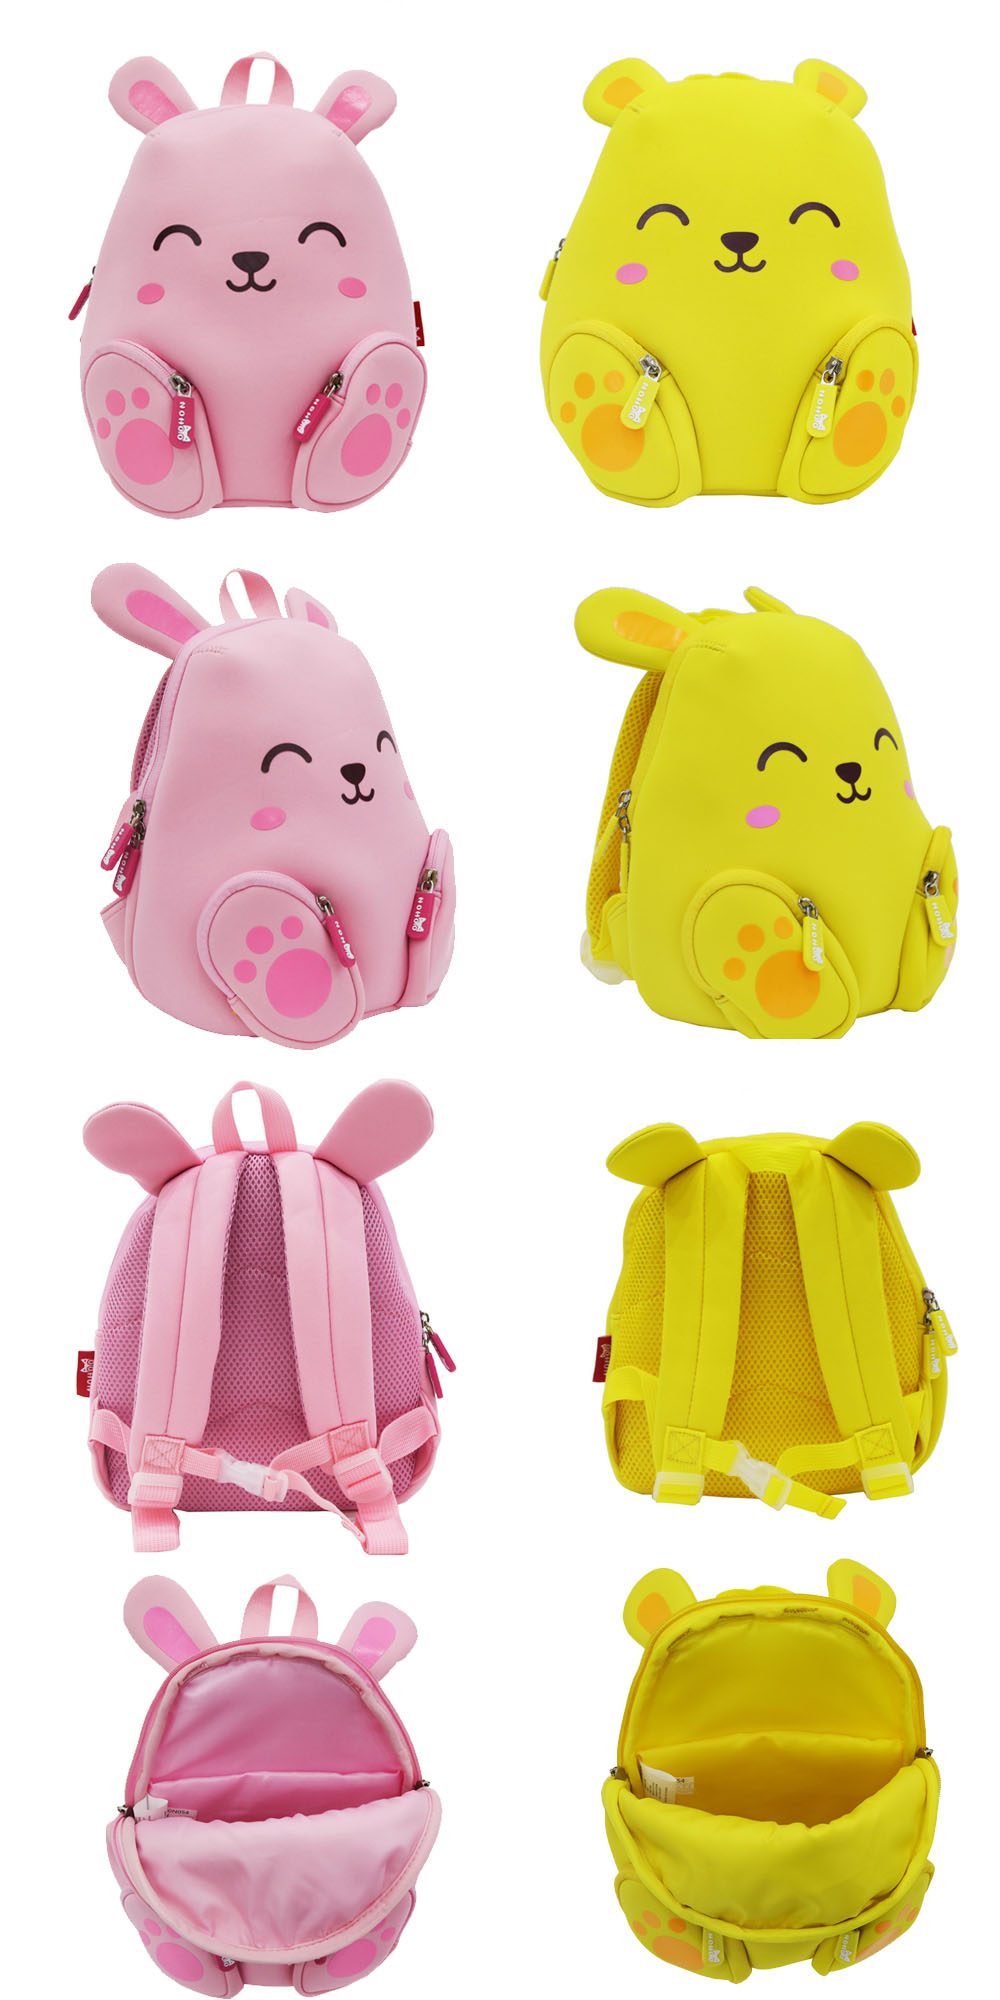 Nohoo Children Products-Find Kids Backpacks Canada Kids Backpacking Pack From Nohoo